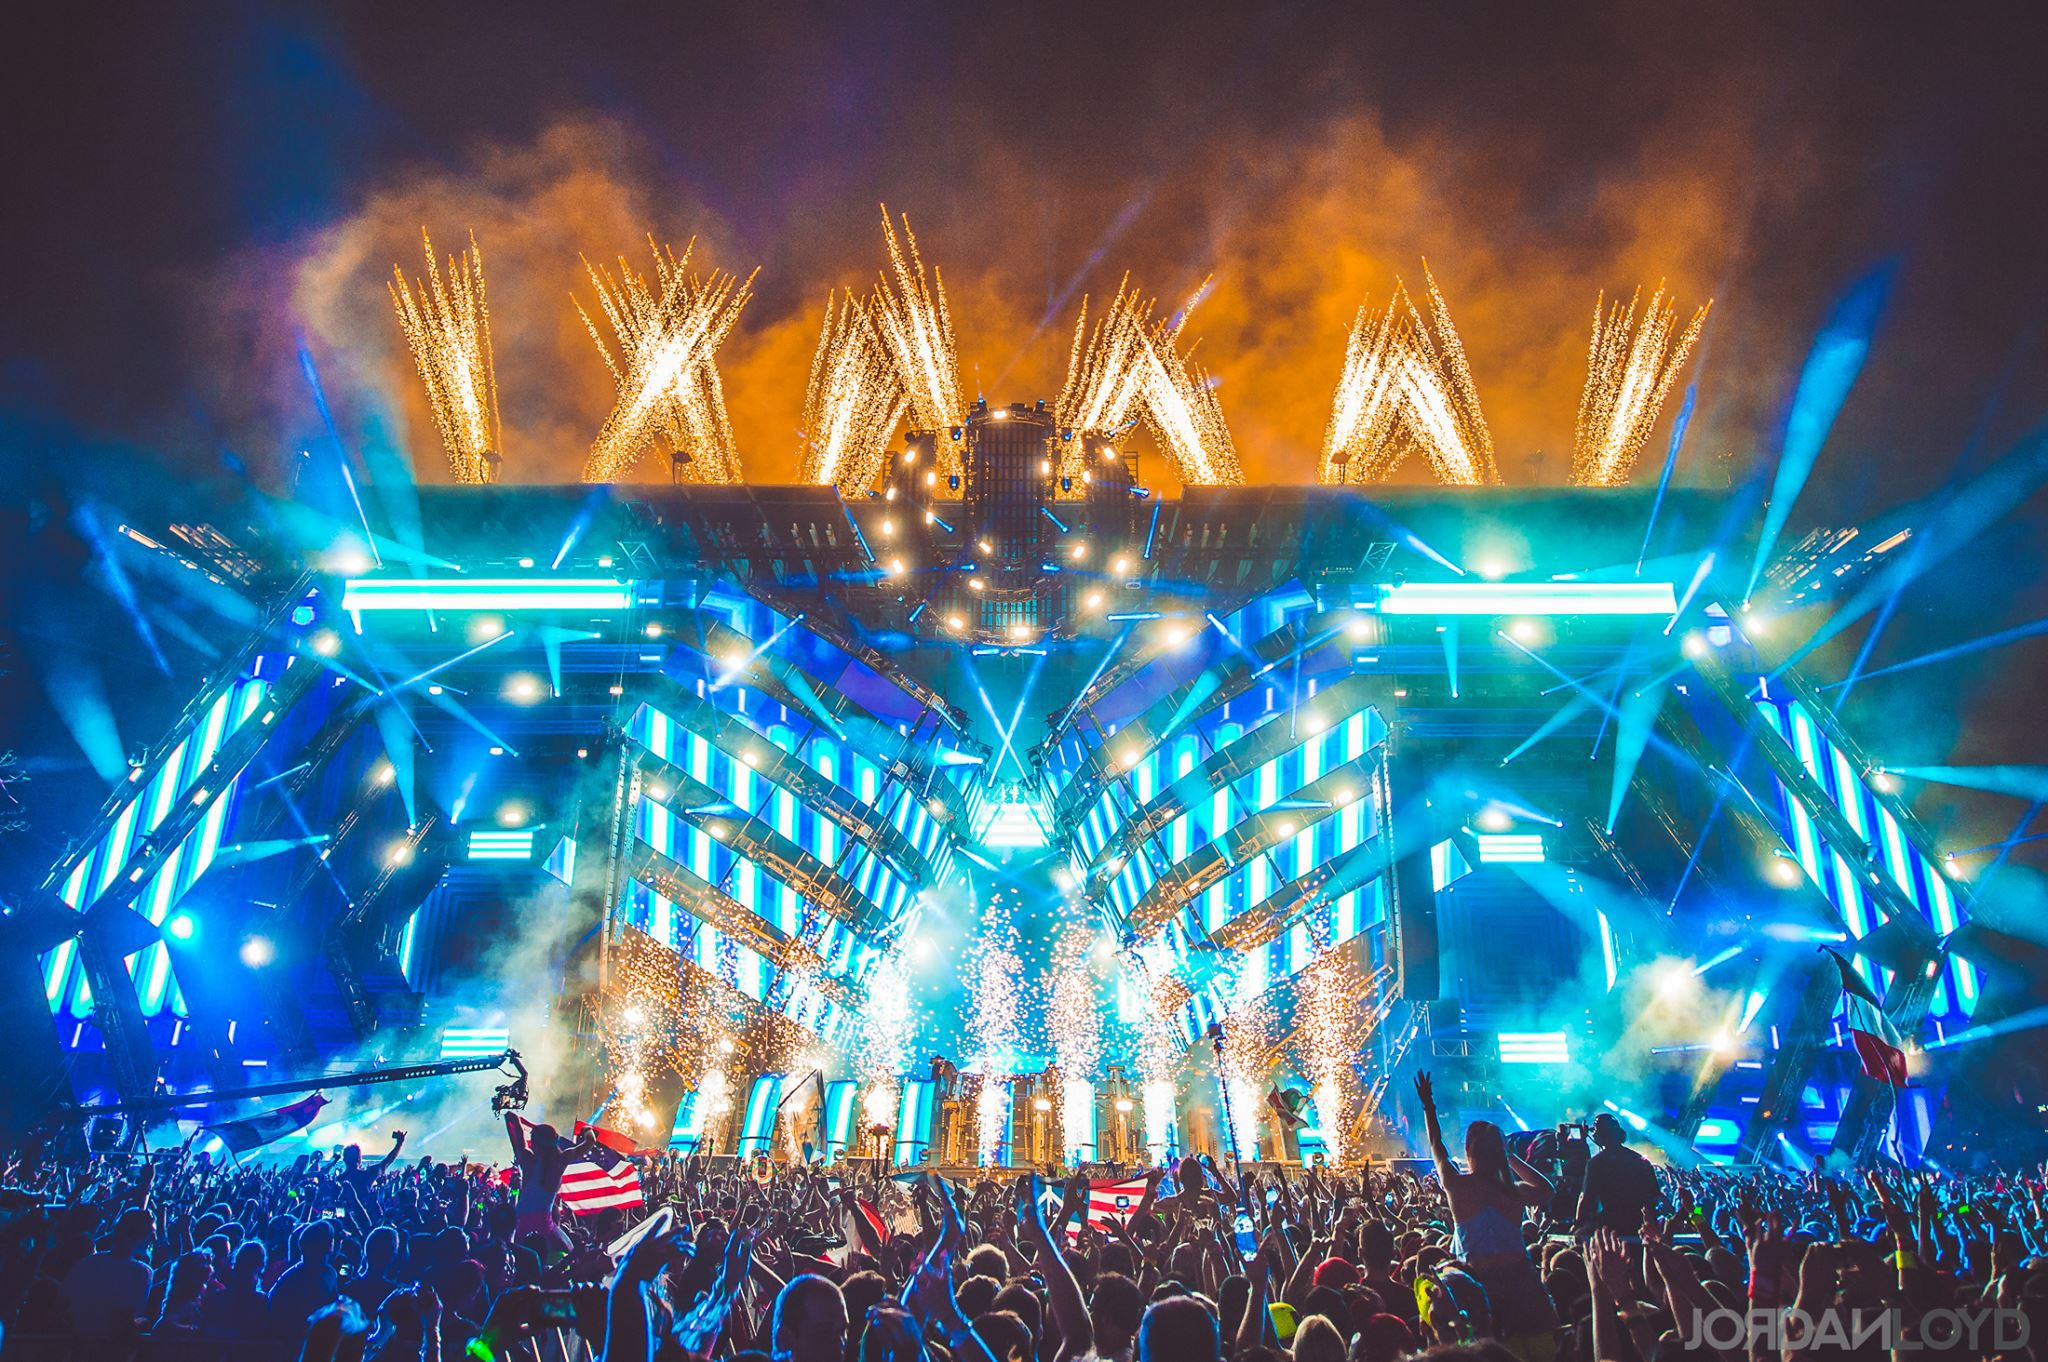 Ultra Goes Down Under…To Australia in 2018